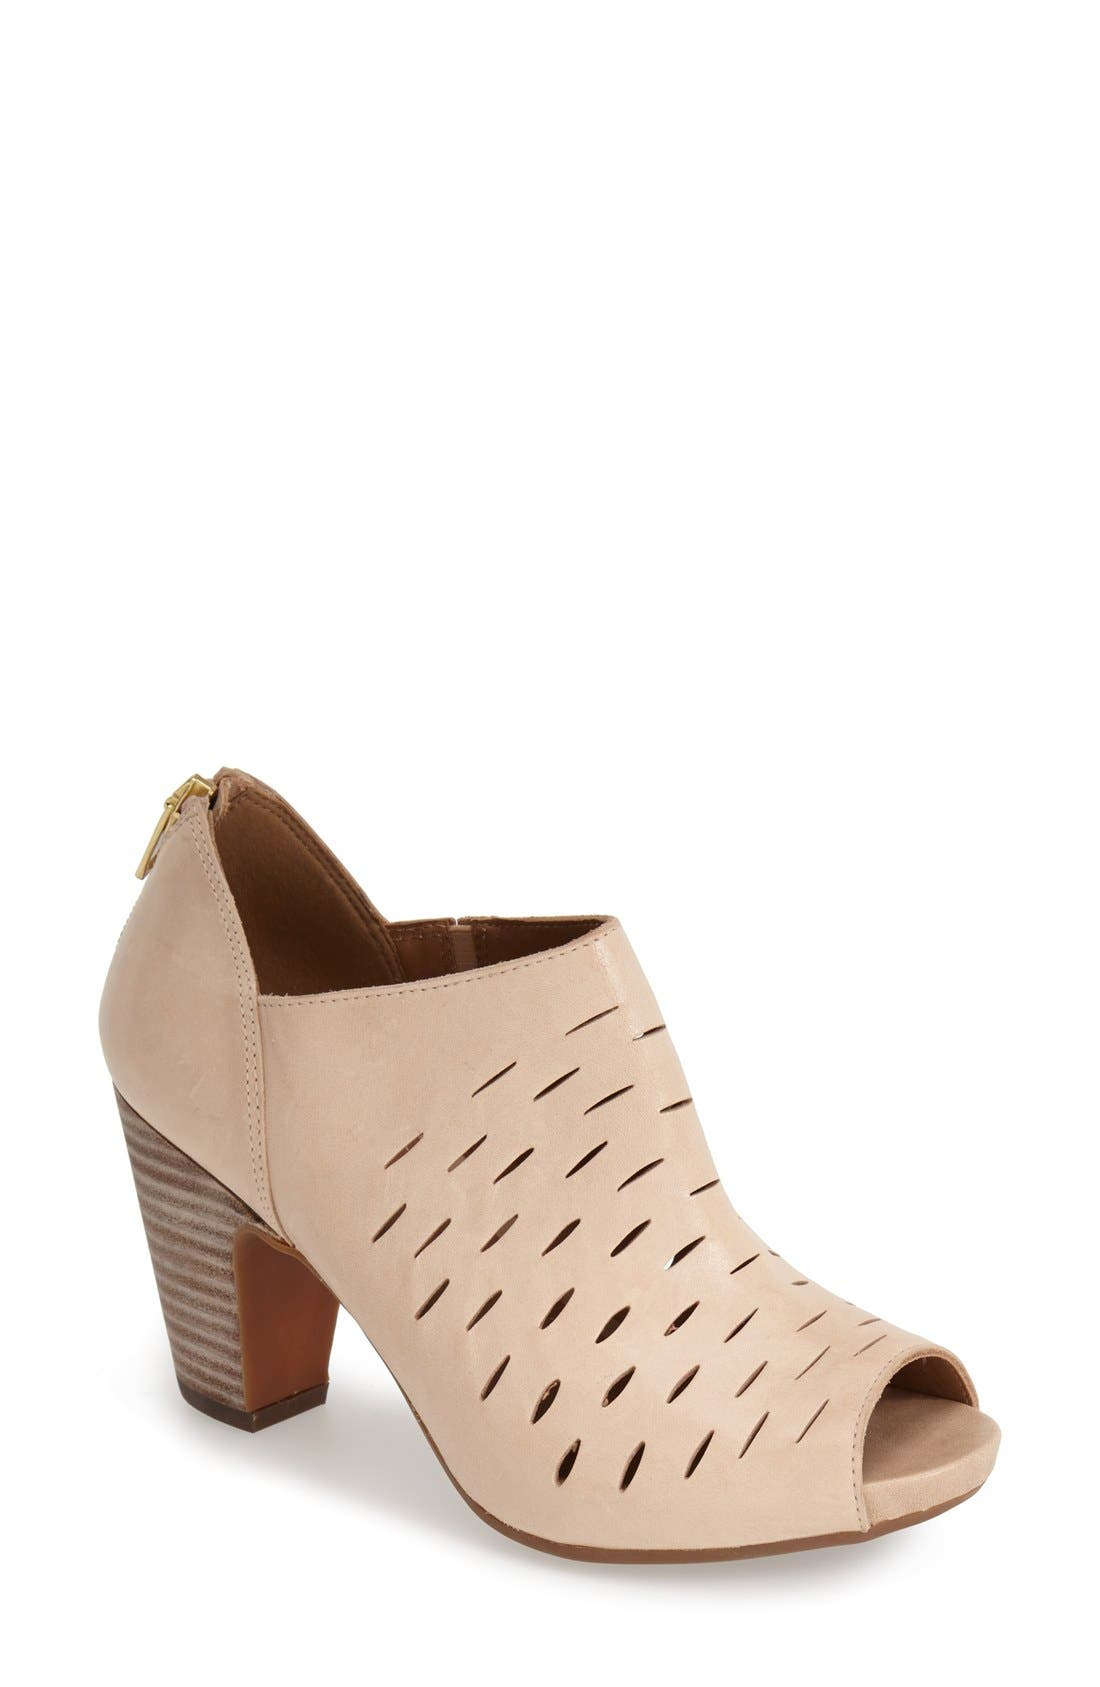 Main Image - Clarks® 'Okena Posh' Peep-Toe Leather Sandal (Women)